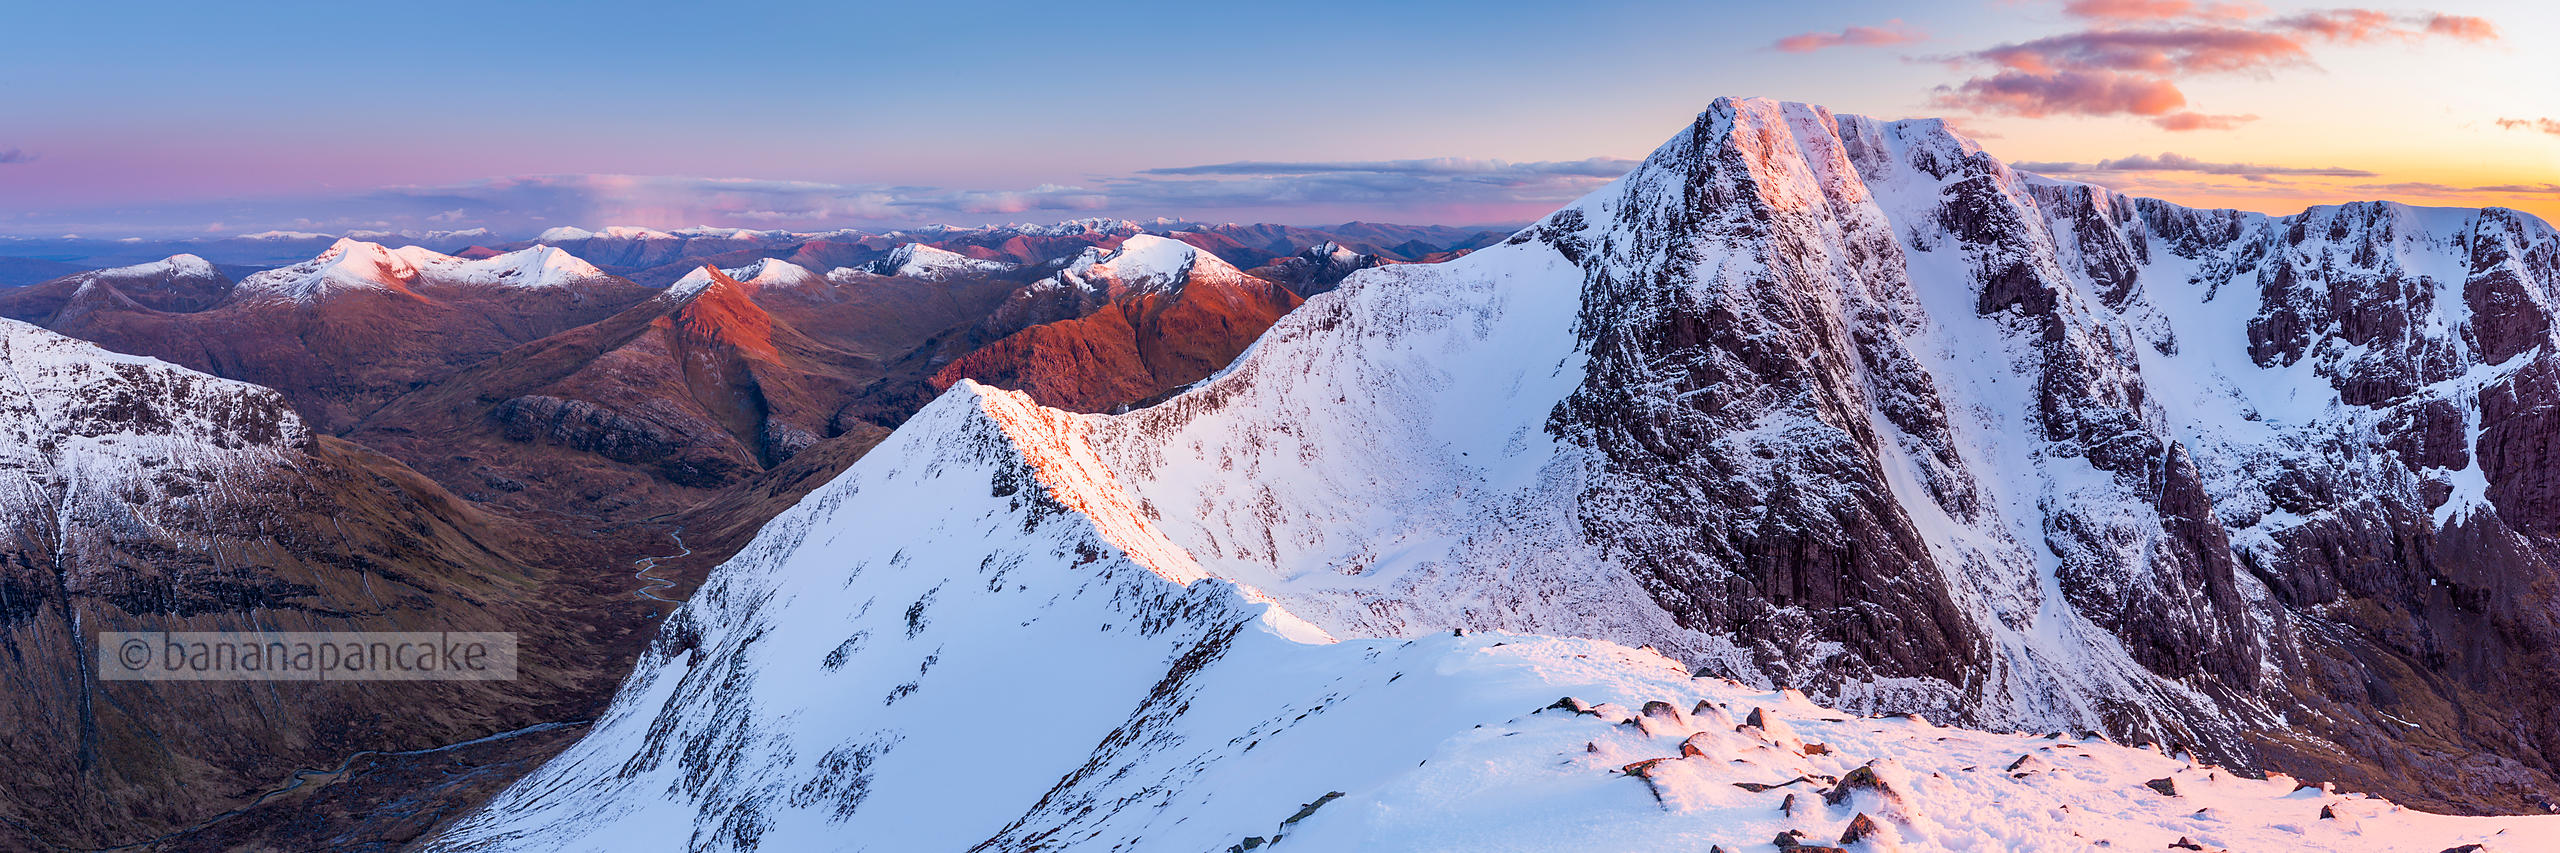 Ben Nevis and the Carn Mor Dearg arête, Scotland (BP2923B)